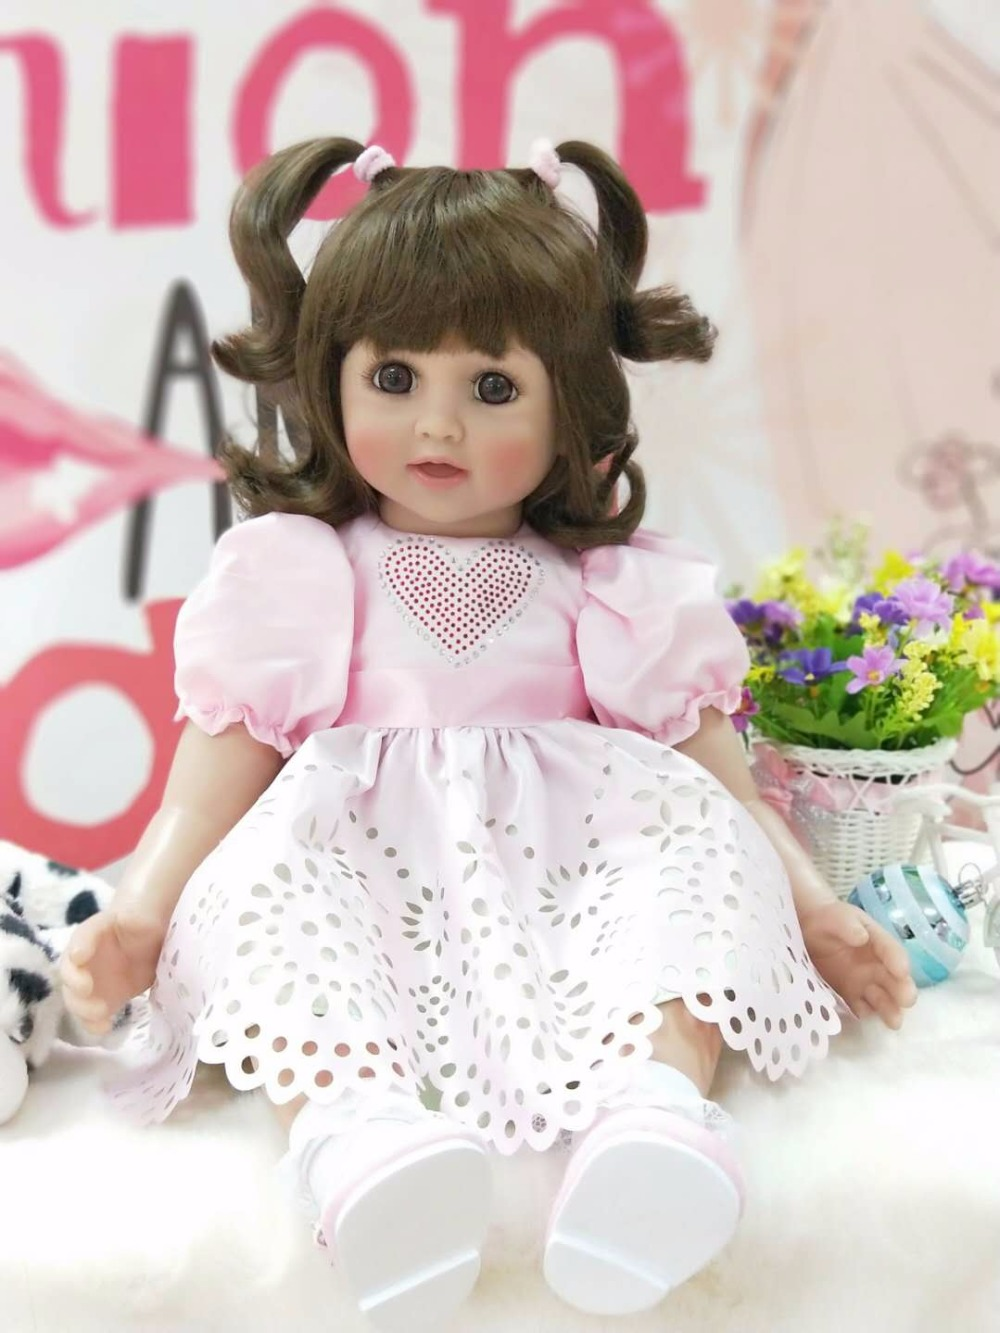 60cm Silicone Reborn Baby Girl Doll Toys 24inch Vinyl Smile Princess Toddler Babies Dolls Birthday Gift Present Play House Toy handmade chinese ancient doll tang beauty princess pingyang 1 6 bjd dolls 12 jointed doll toy for girl christmas gift brinquedo